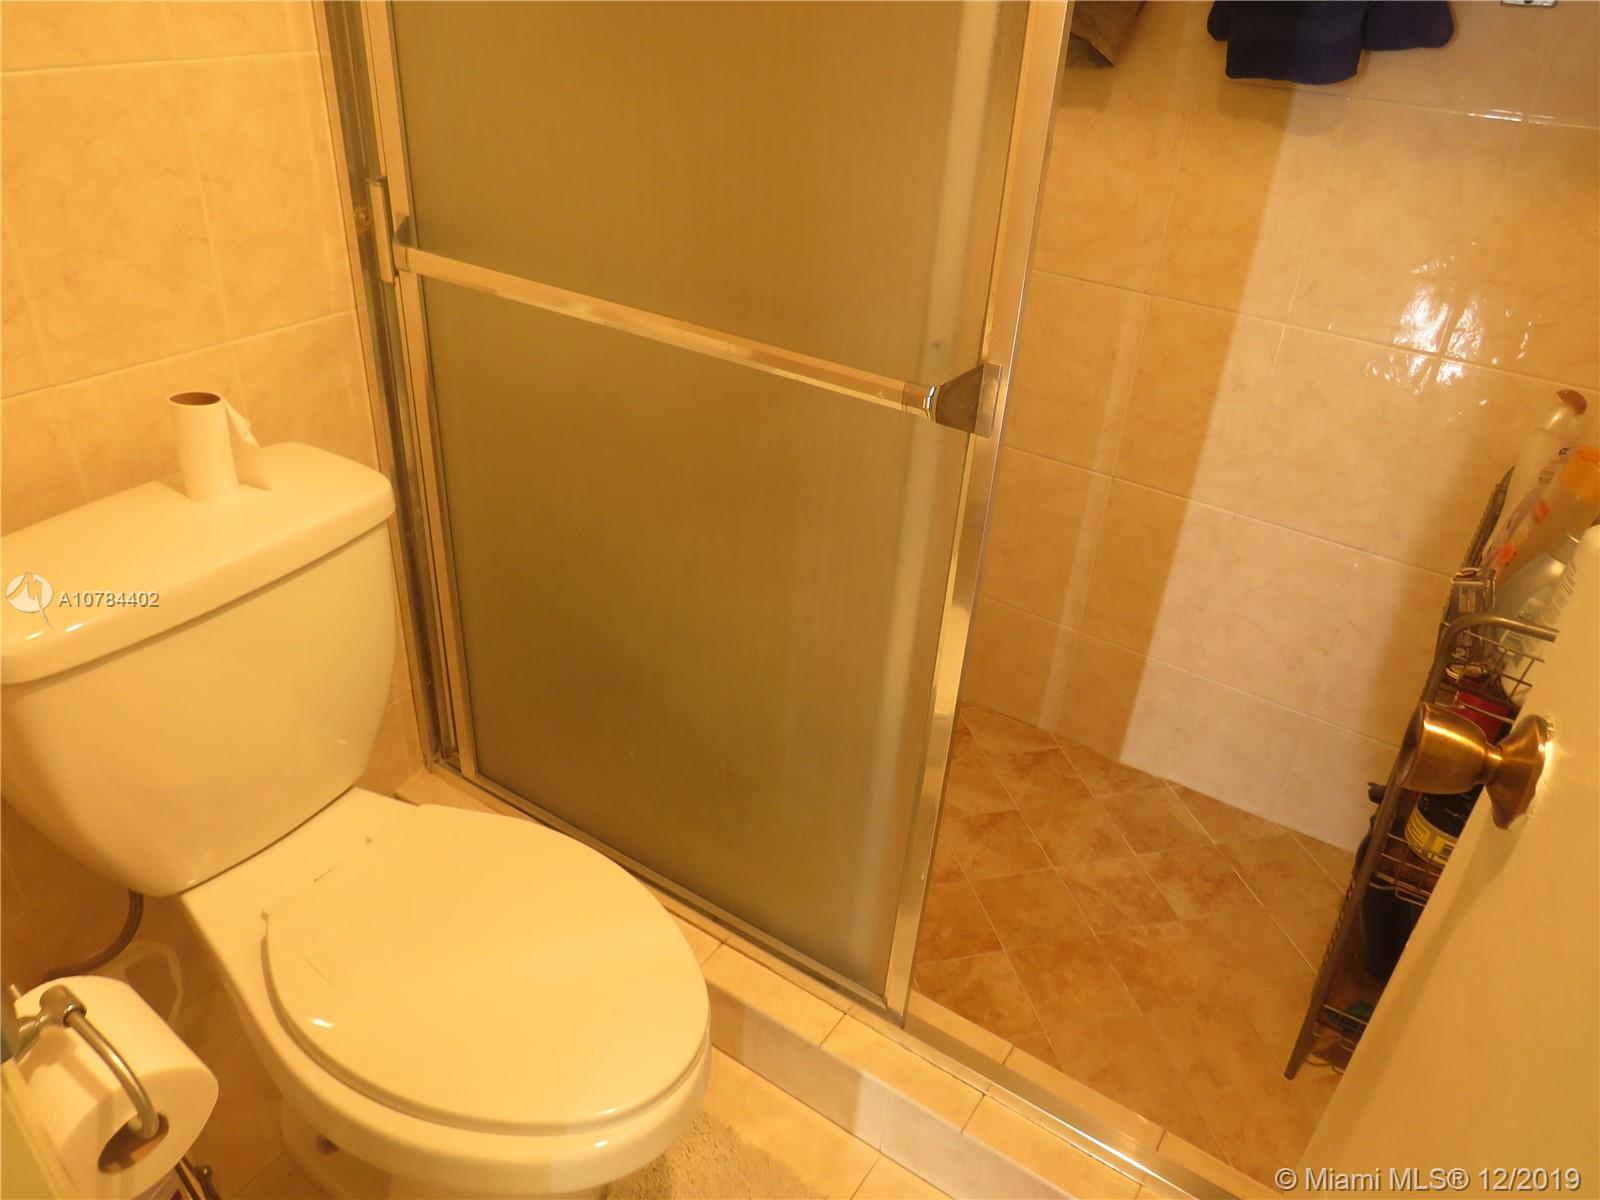 1681 NW 70th Ave # 414, Plantation, Florida 33313, 2 Bedrooms Bedrooms, 1 Room Rooms,2 BathroomsBathrooms,Residential,For Sale,1681 NW 70th Ave # 414,A10784402